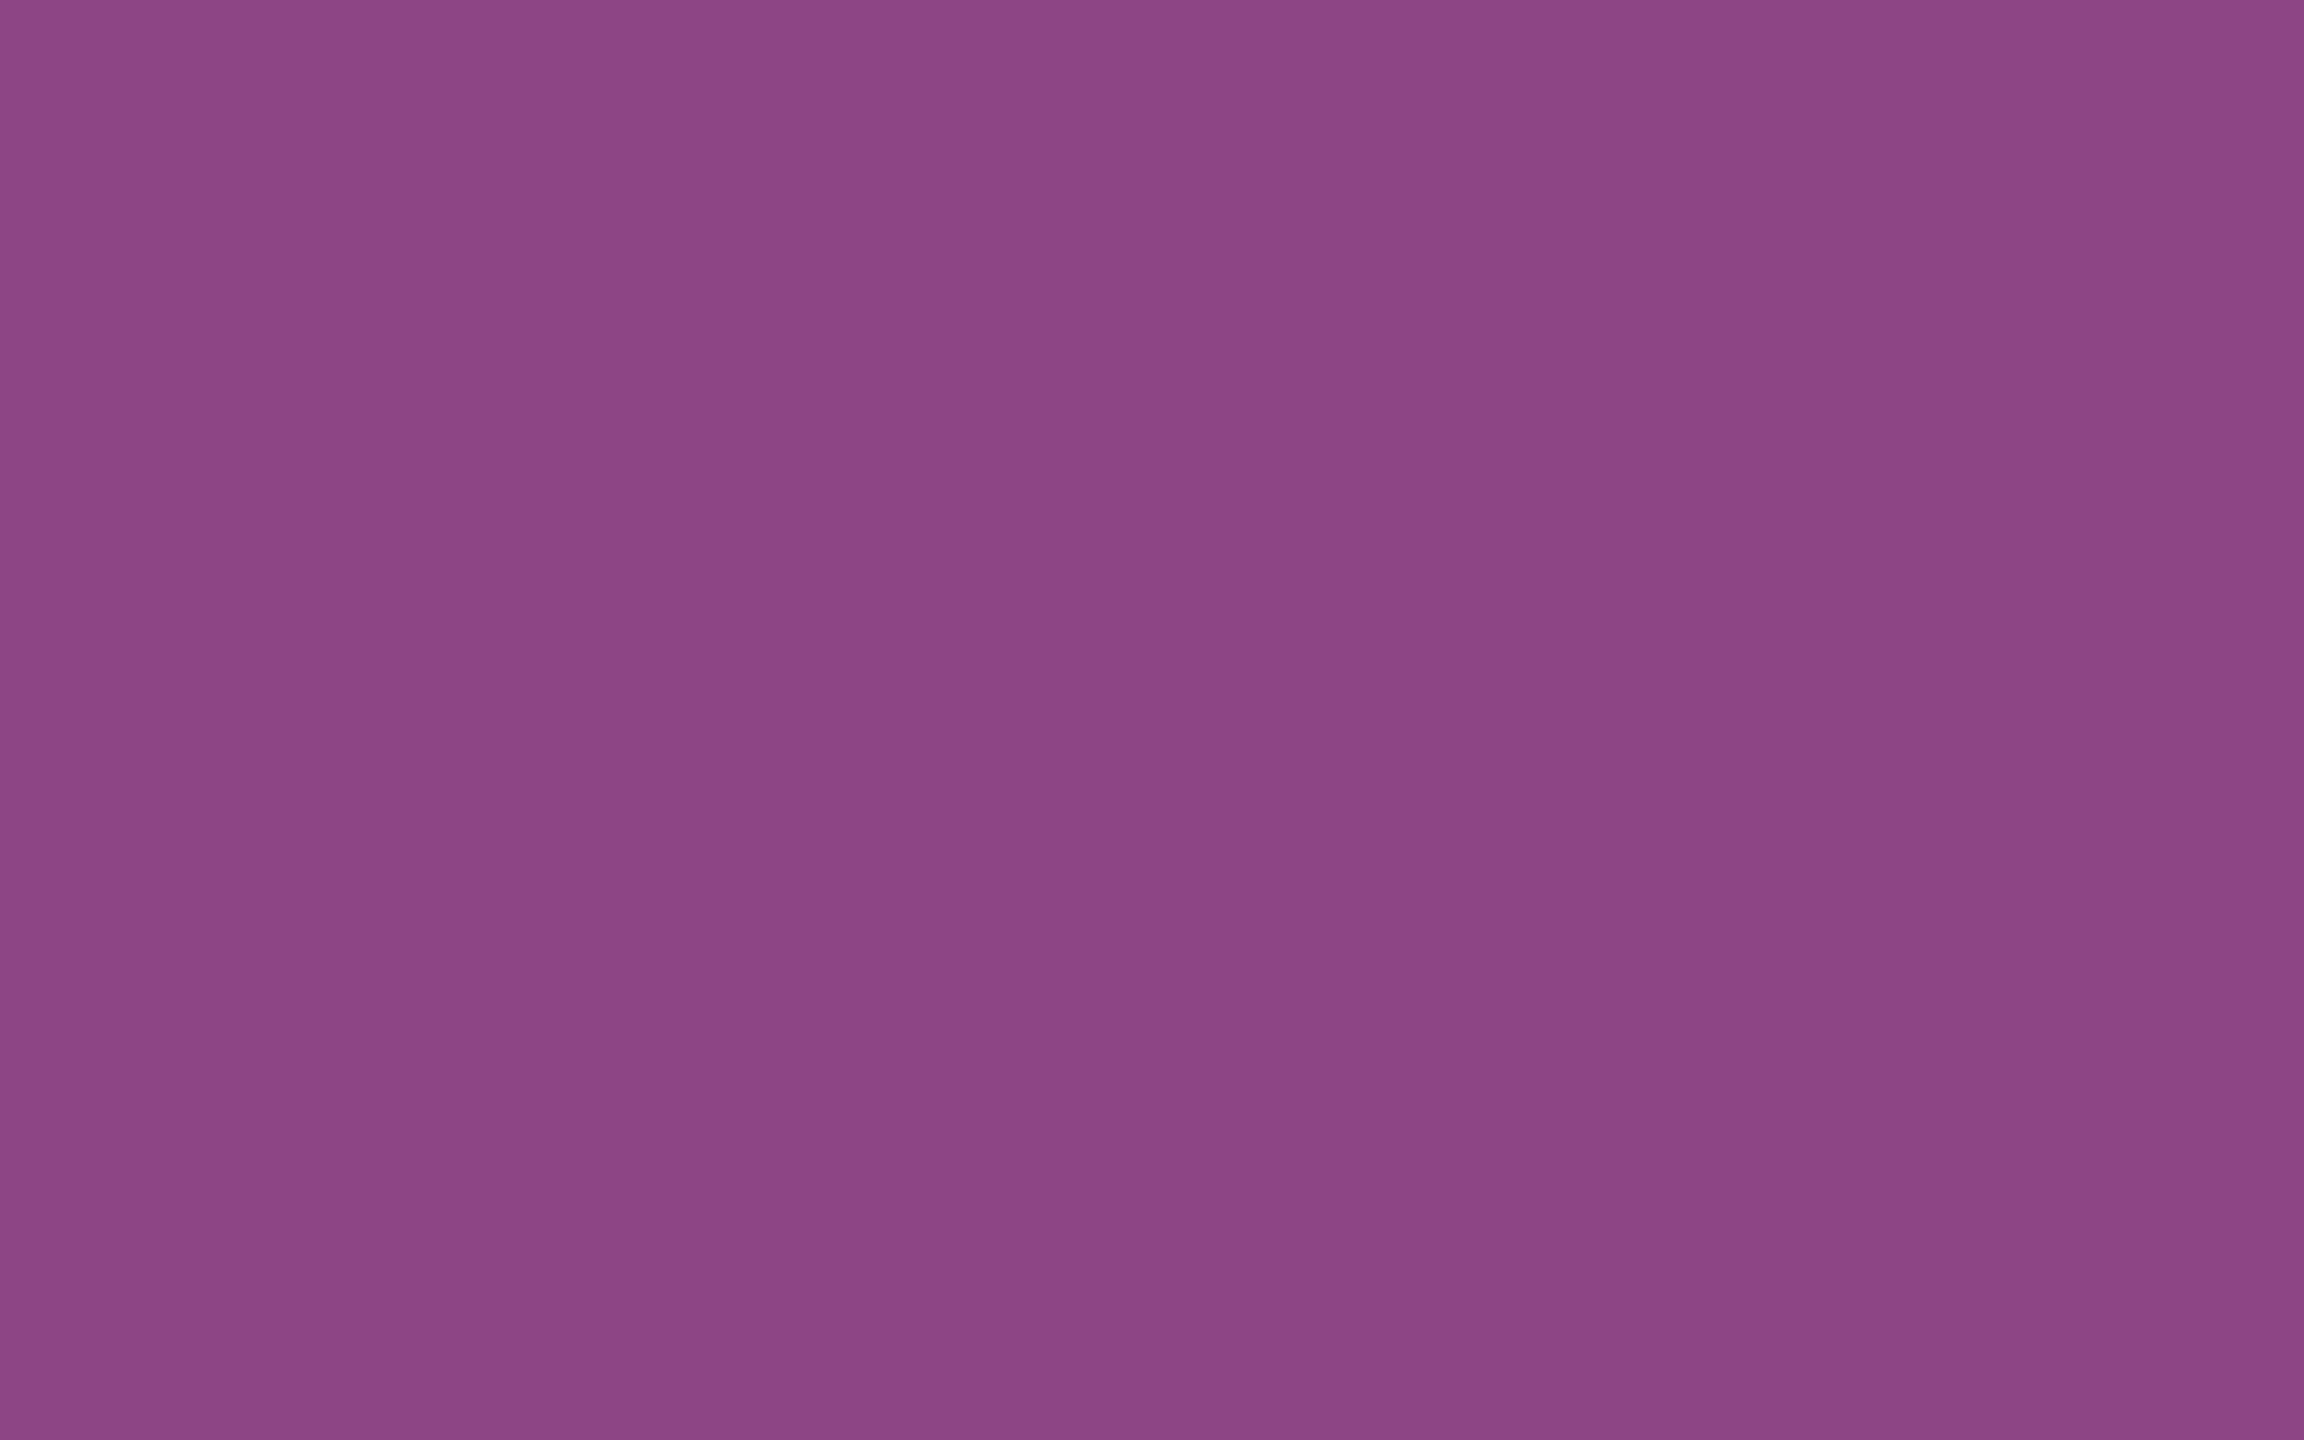 2304x1440 Plum Traditional Solid Color Background